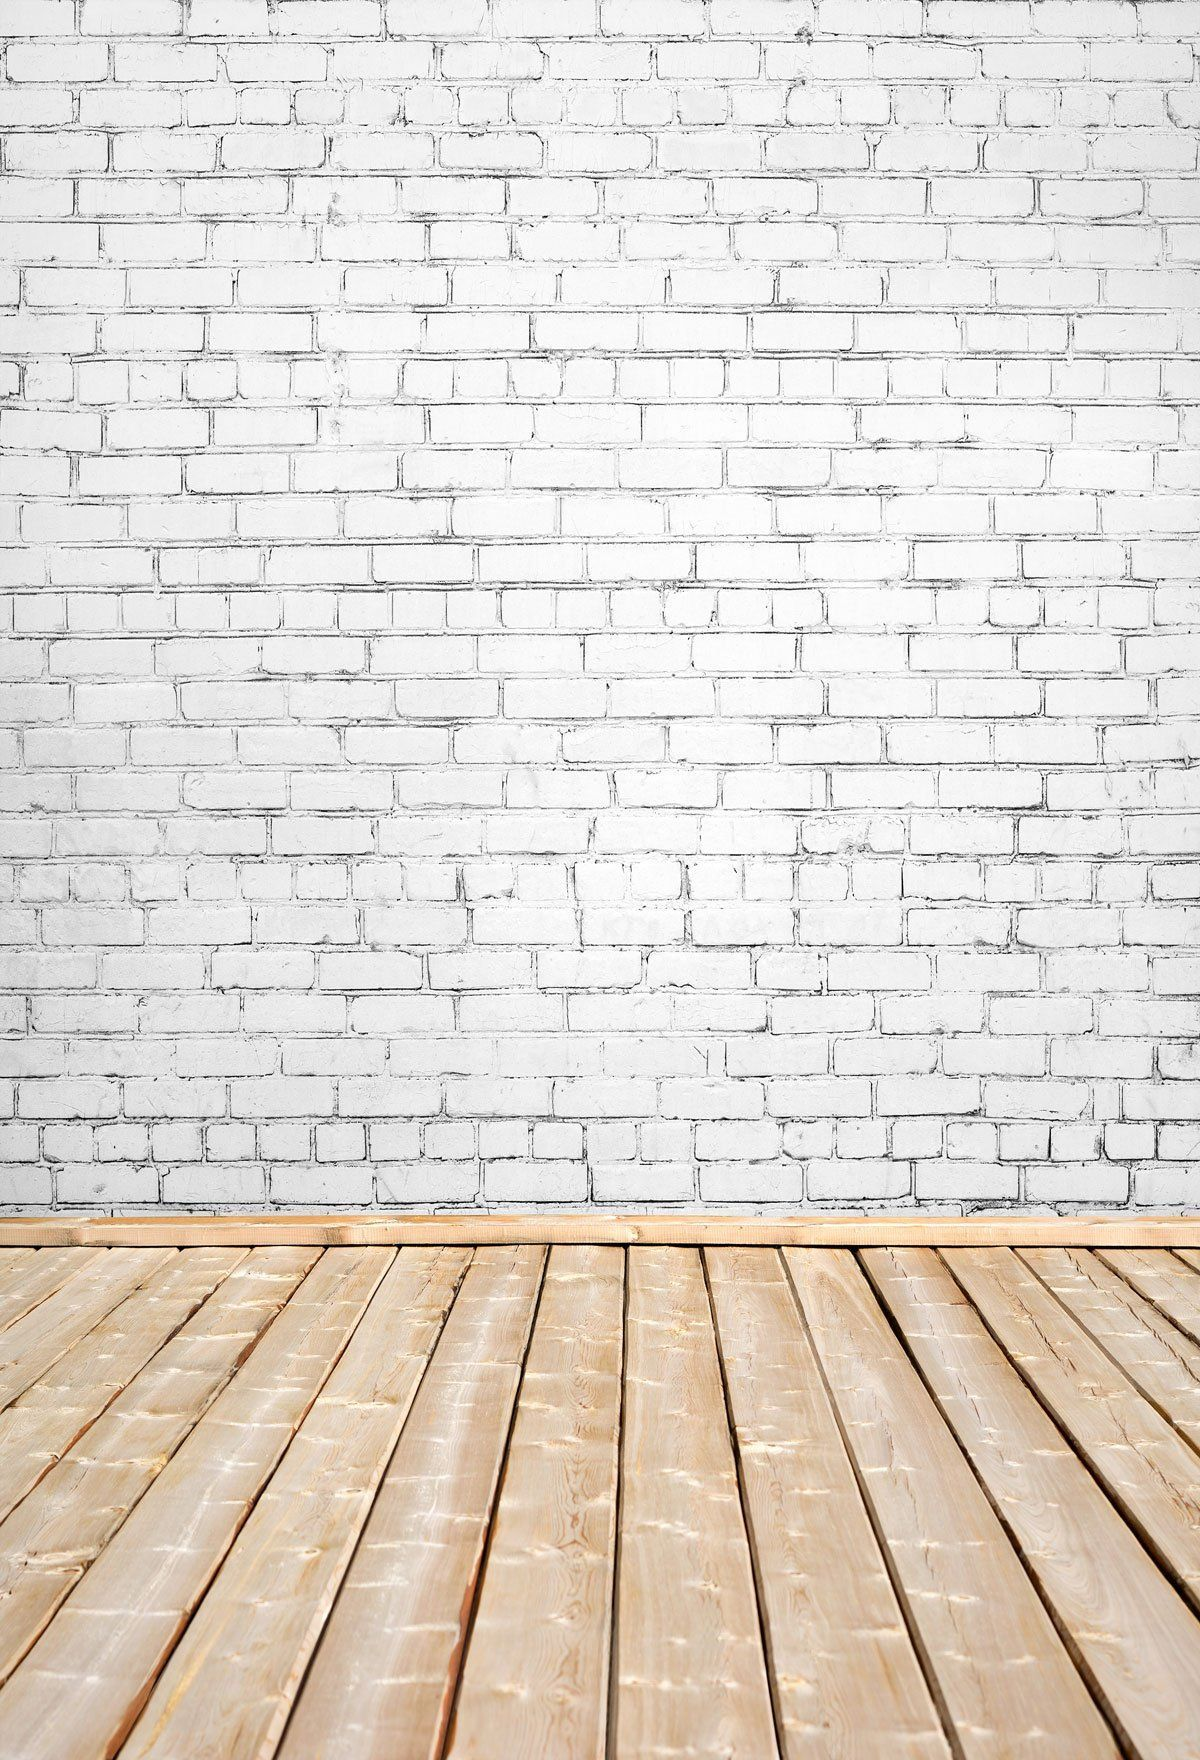 Kate White Brick Wall And Wooden Floor Backdrop For Photography Wooden Wallpaper White Brick Walls Ceiling Paint Colors